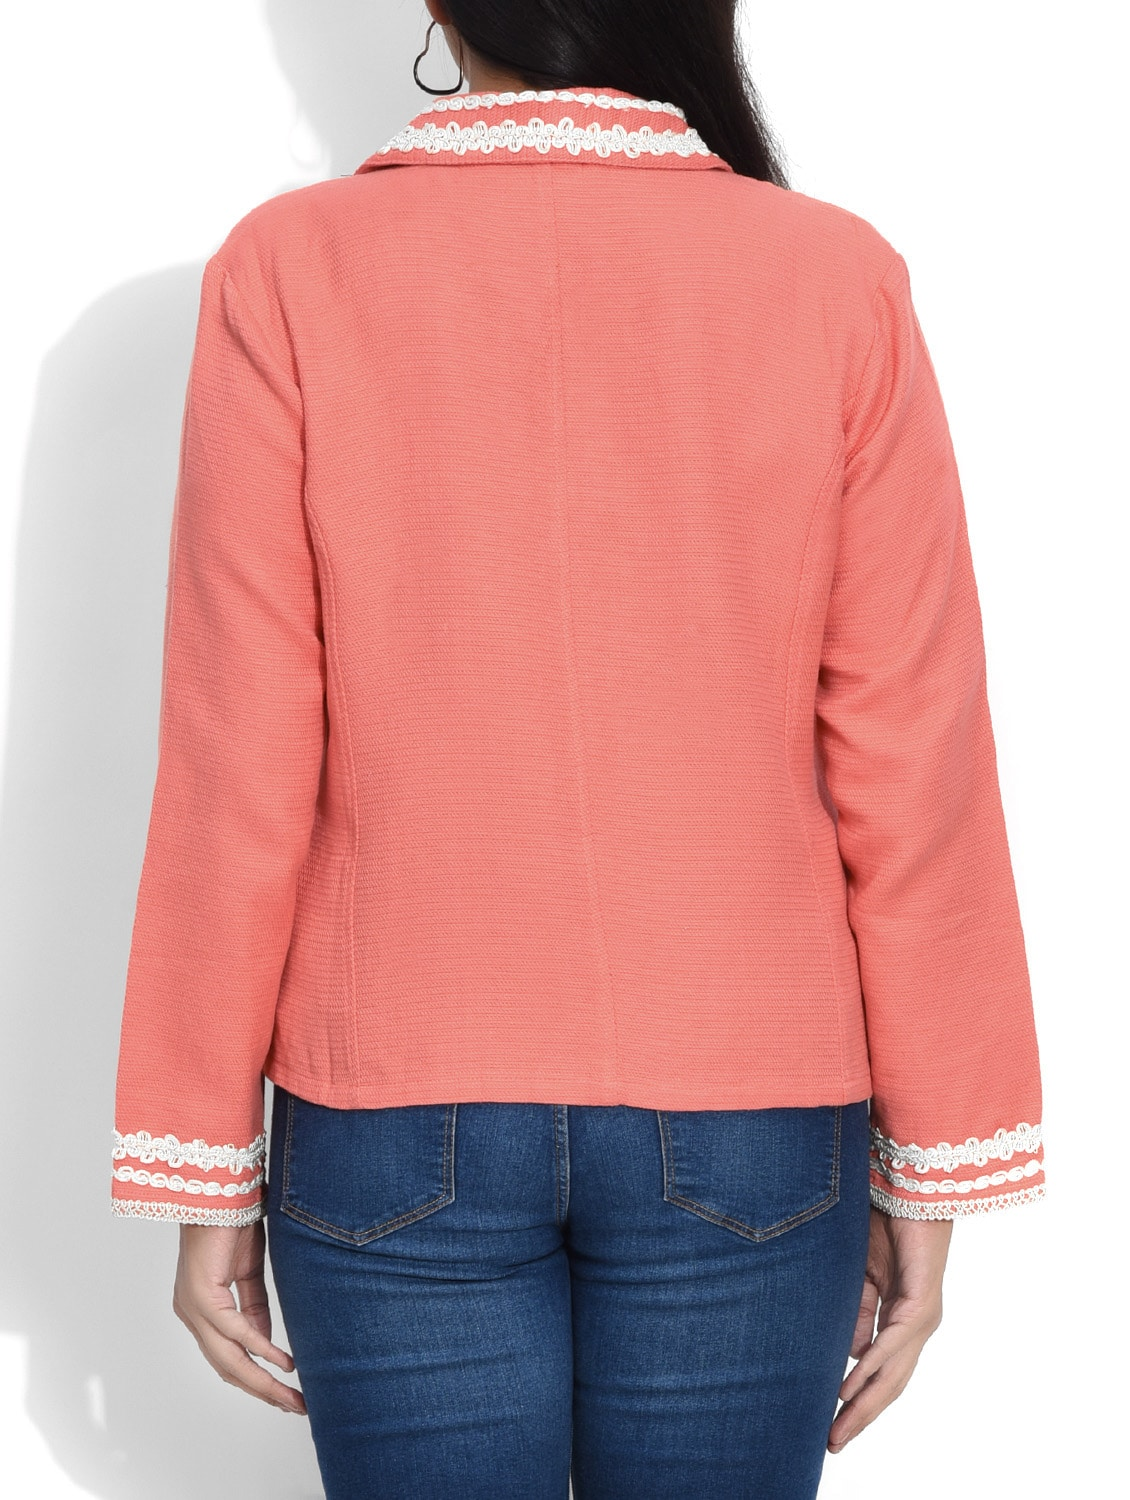 b5a15fb26b2 Buy Peach Laced Cotton Jacket by Entease - Online shopping for Summer  Jackets in India